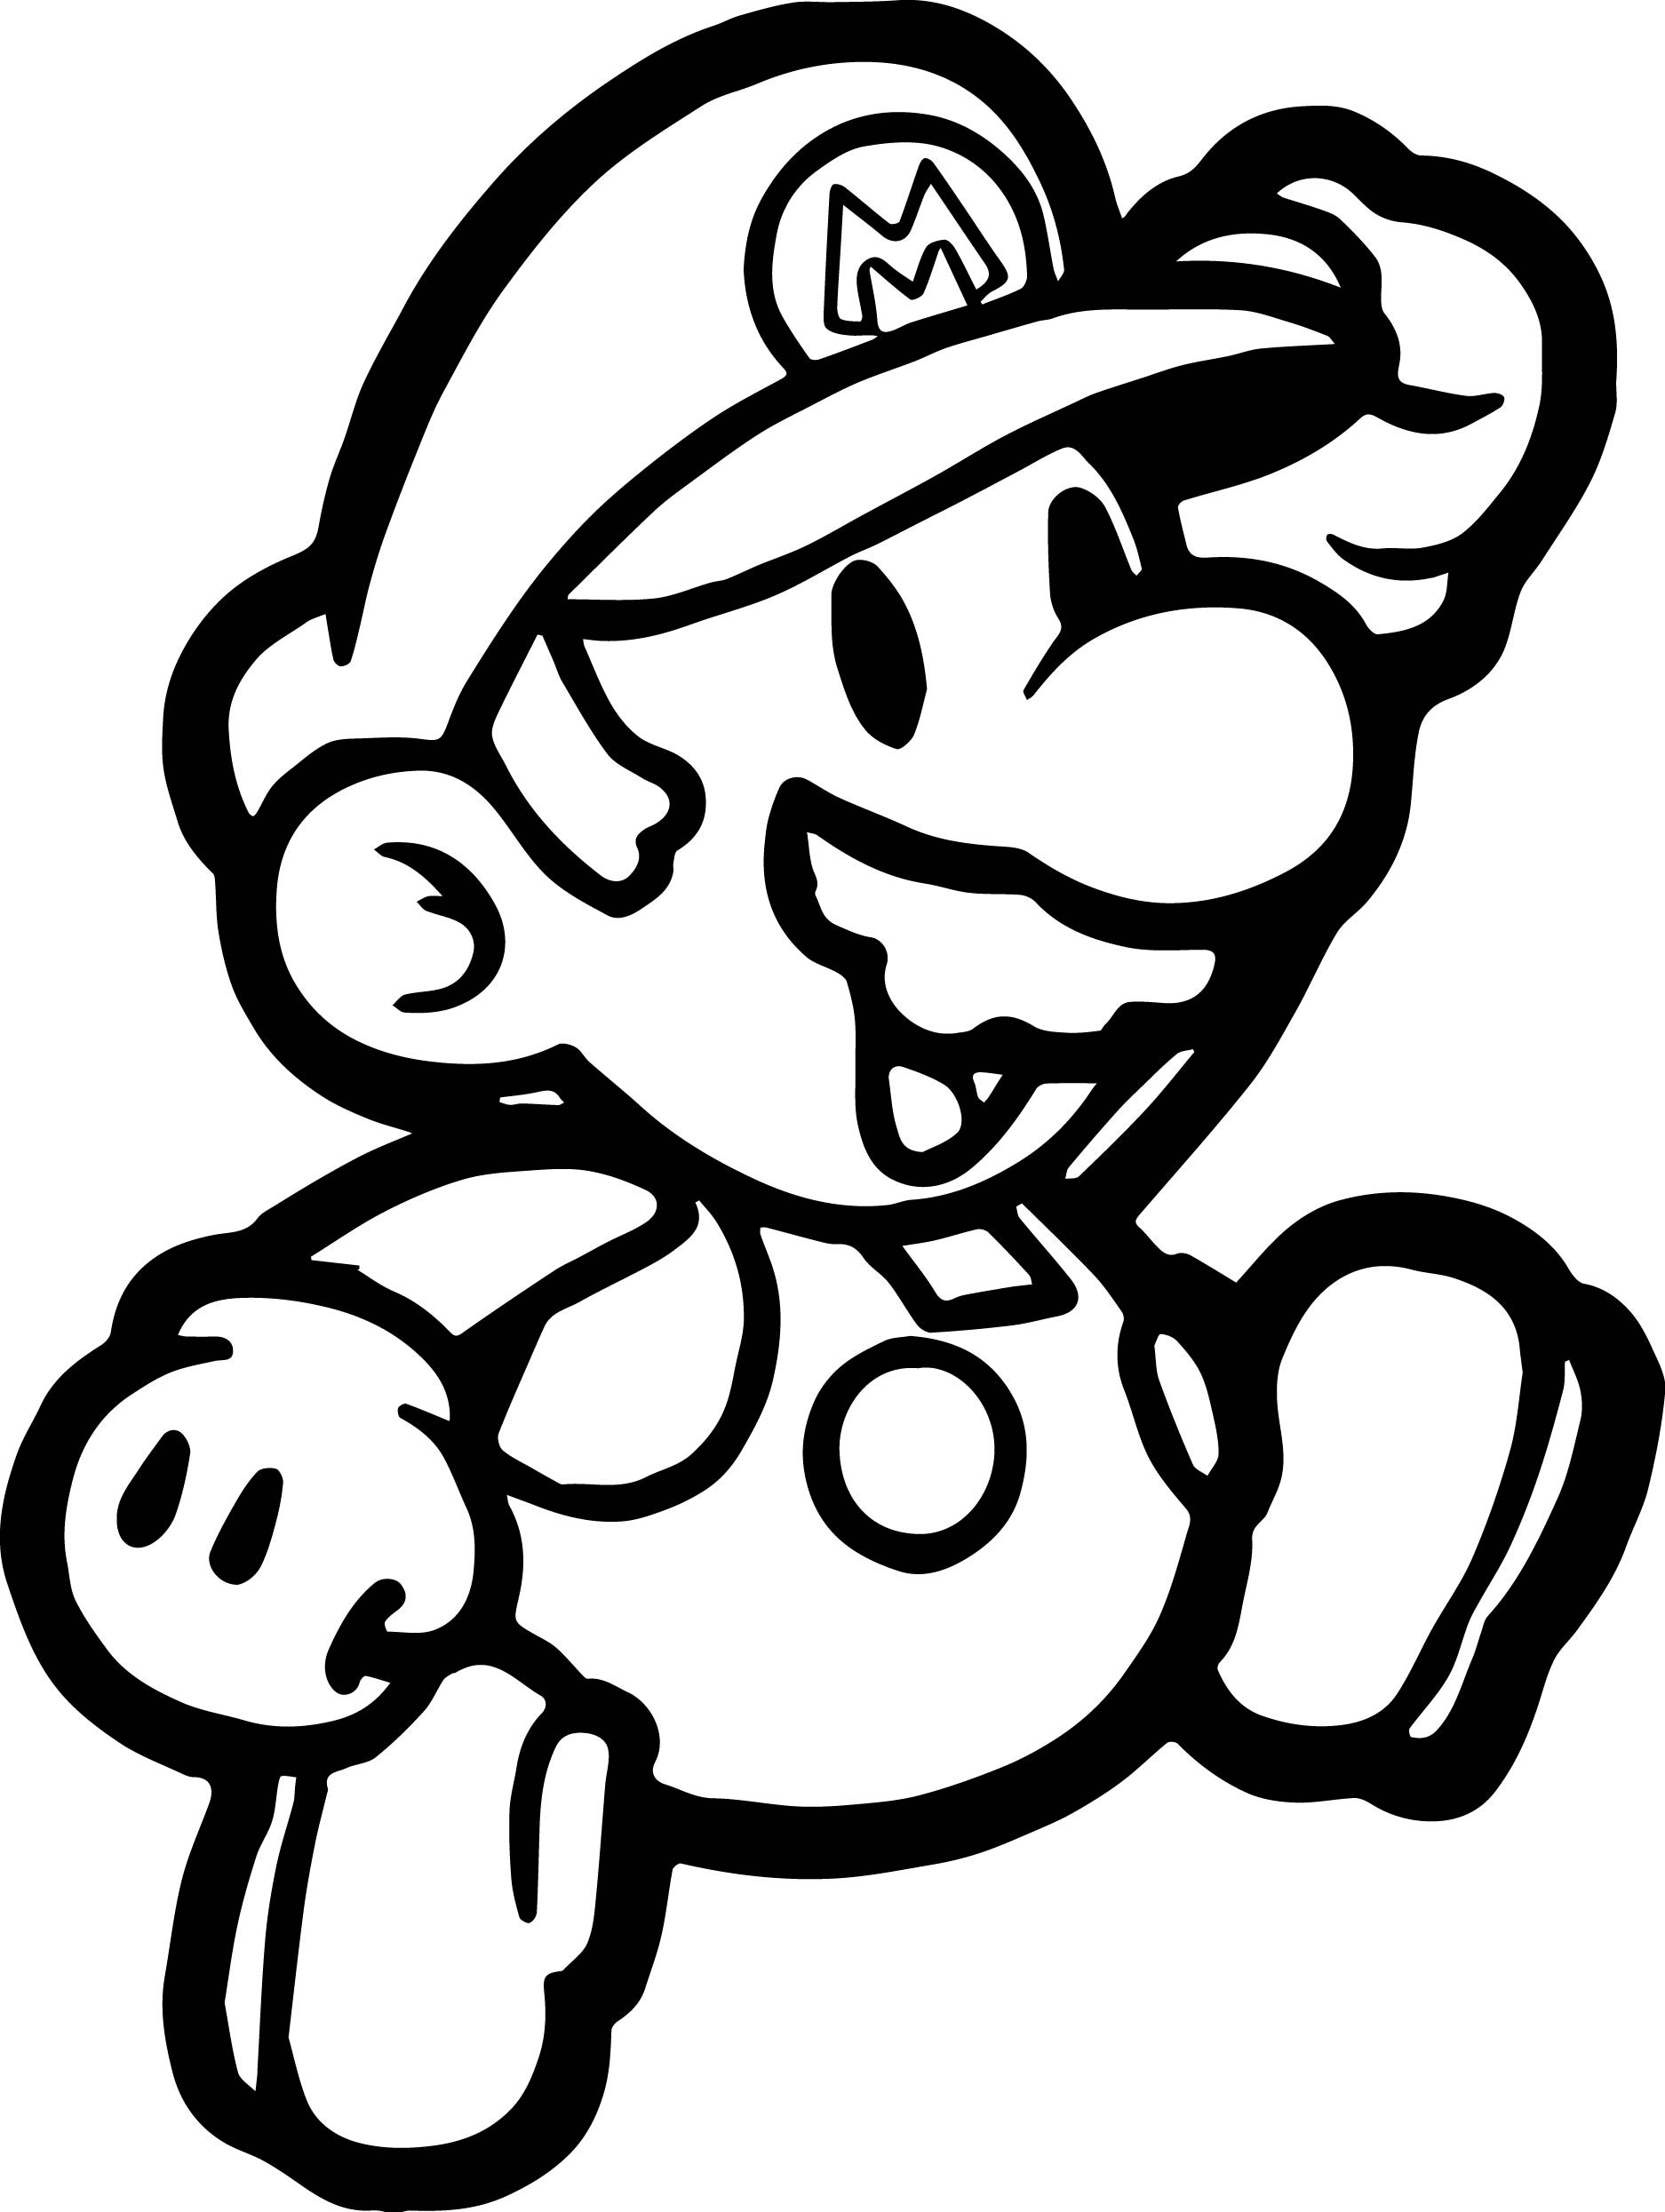 Keroppi Coloring Pages Free to Print Copy Paper Mario Kids 3 Collection Of Super Mario Bros Coloring Pages to Print